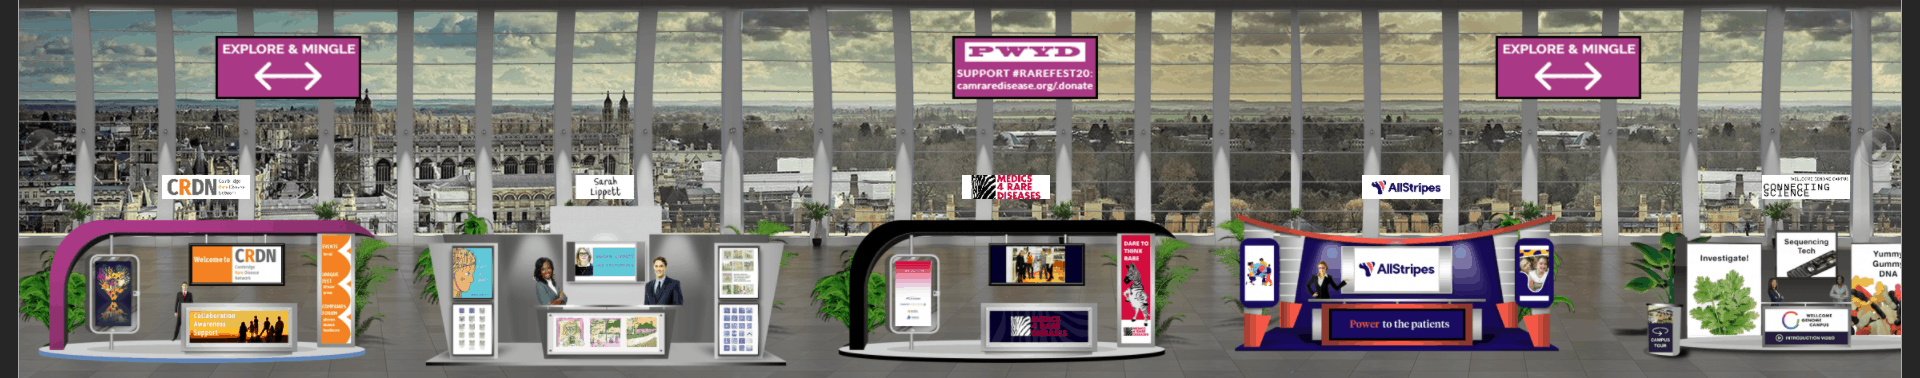 A section of RAREfest20 virtual exhibition hall  showing 4 exhibit stands with banners and posters and a backdrop drop photo of the rooftops of Cambridge